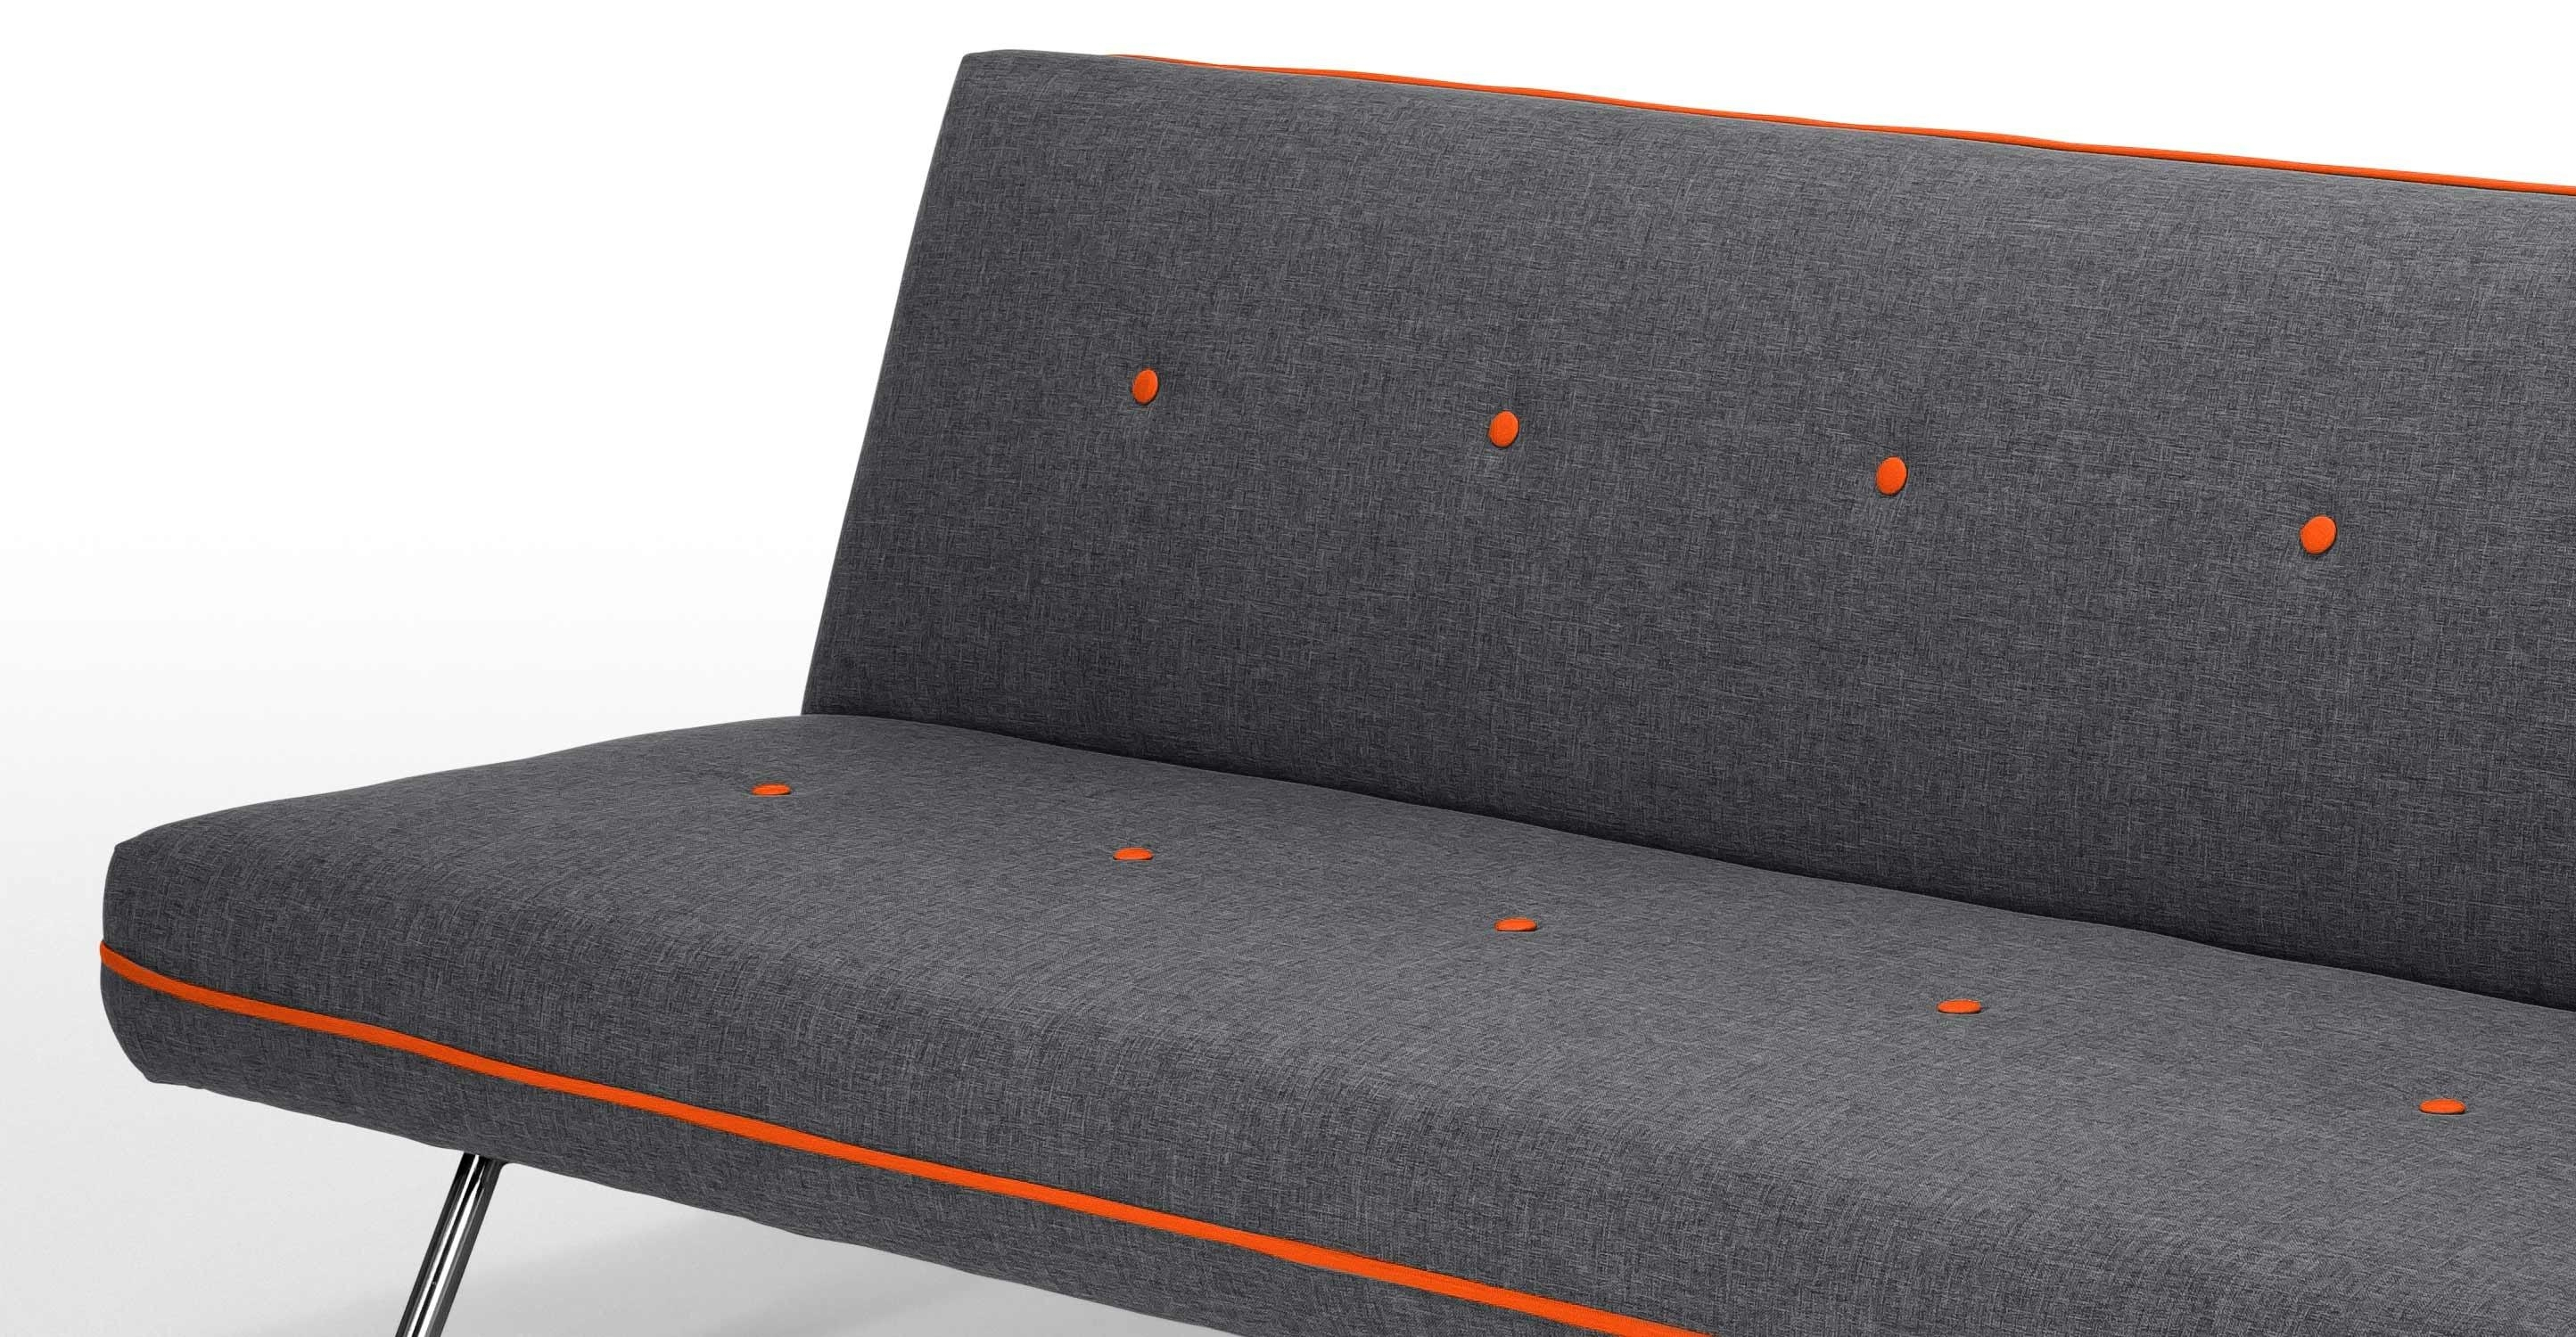 Perfect Sofa Bed Inflatable Pull Out E And Design Intended For Pier 1 Sofa Beds (View 20 of 20)